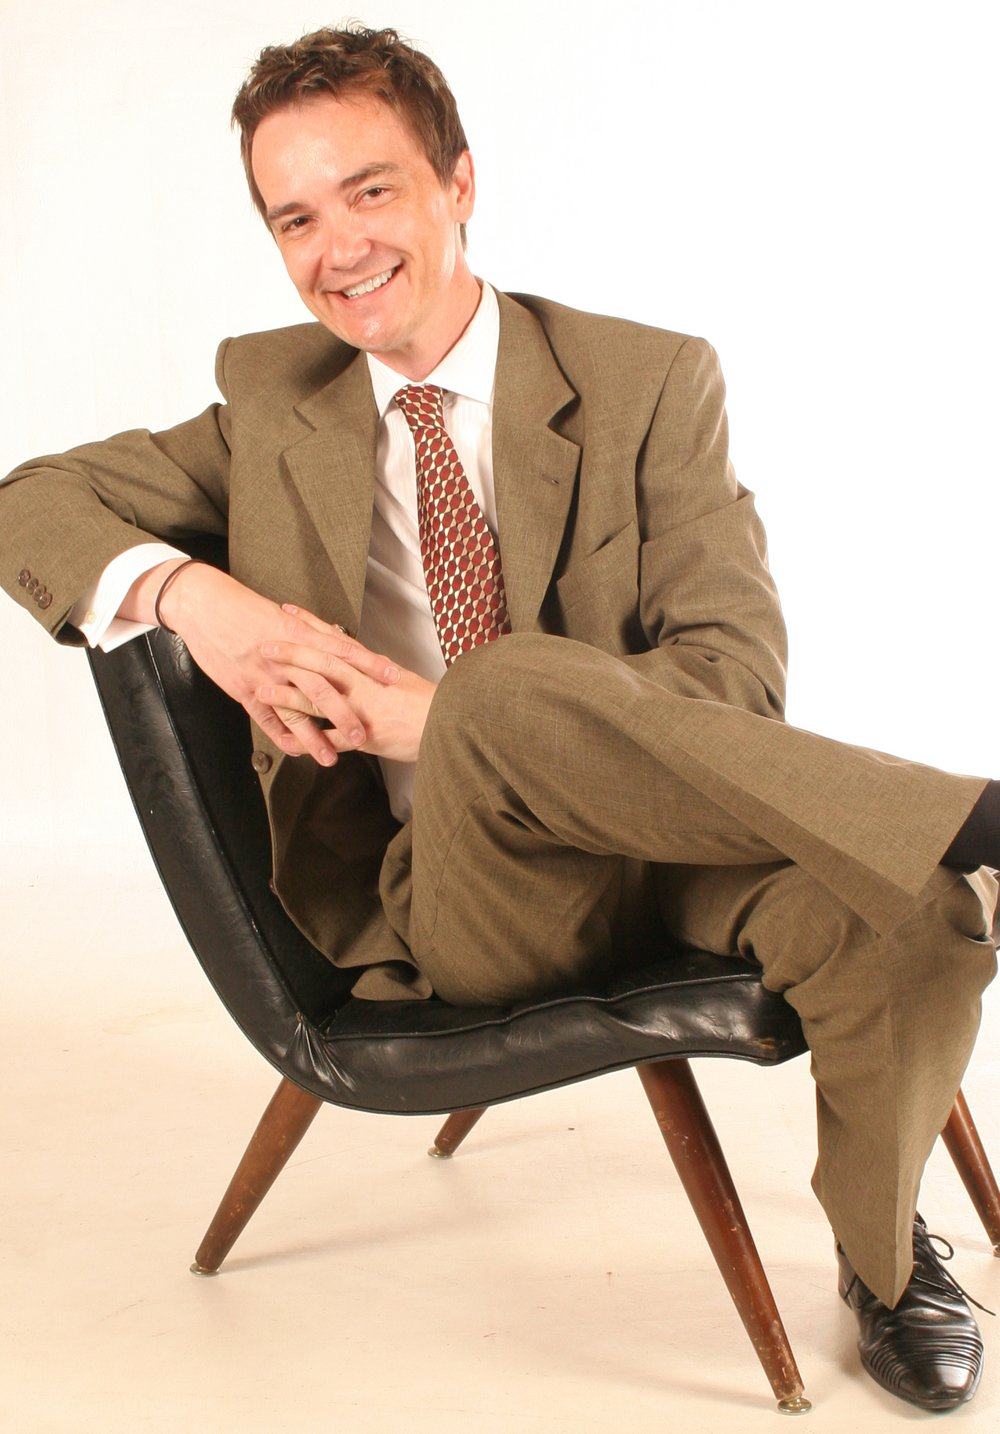 brown suit chair-cropped.jpg